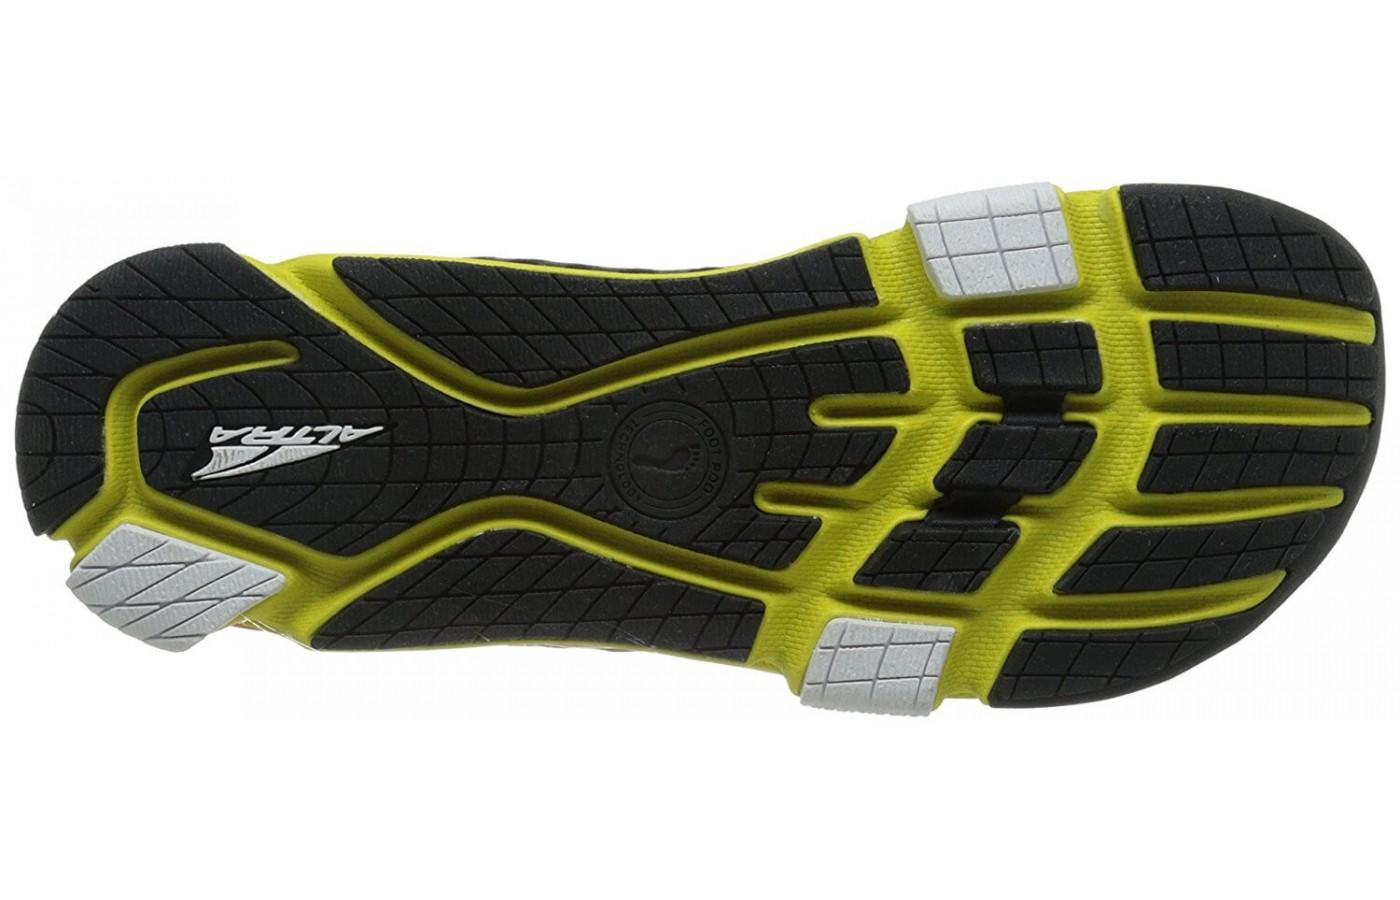 the outsole of the Altra Provision 2